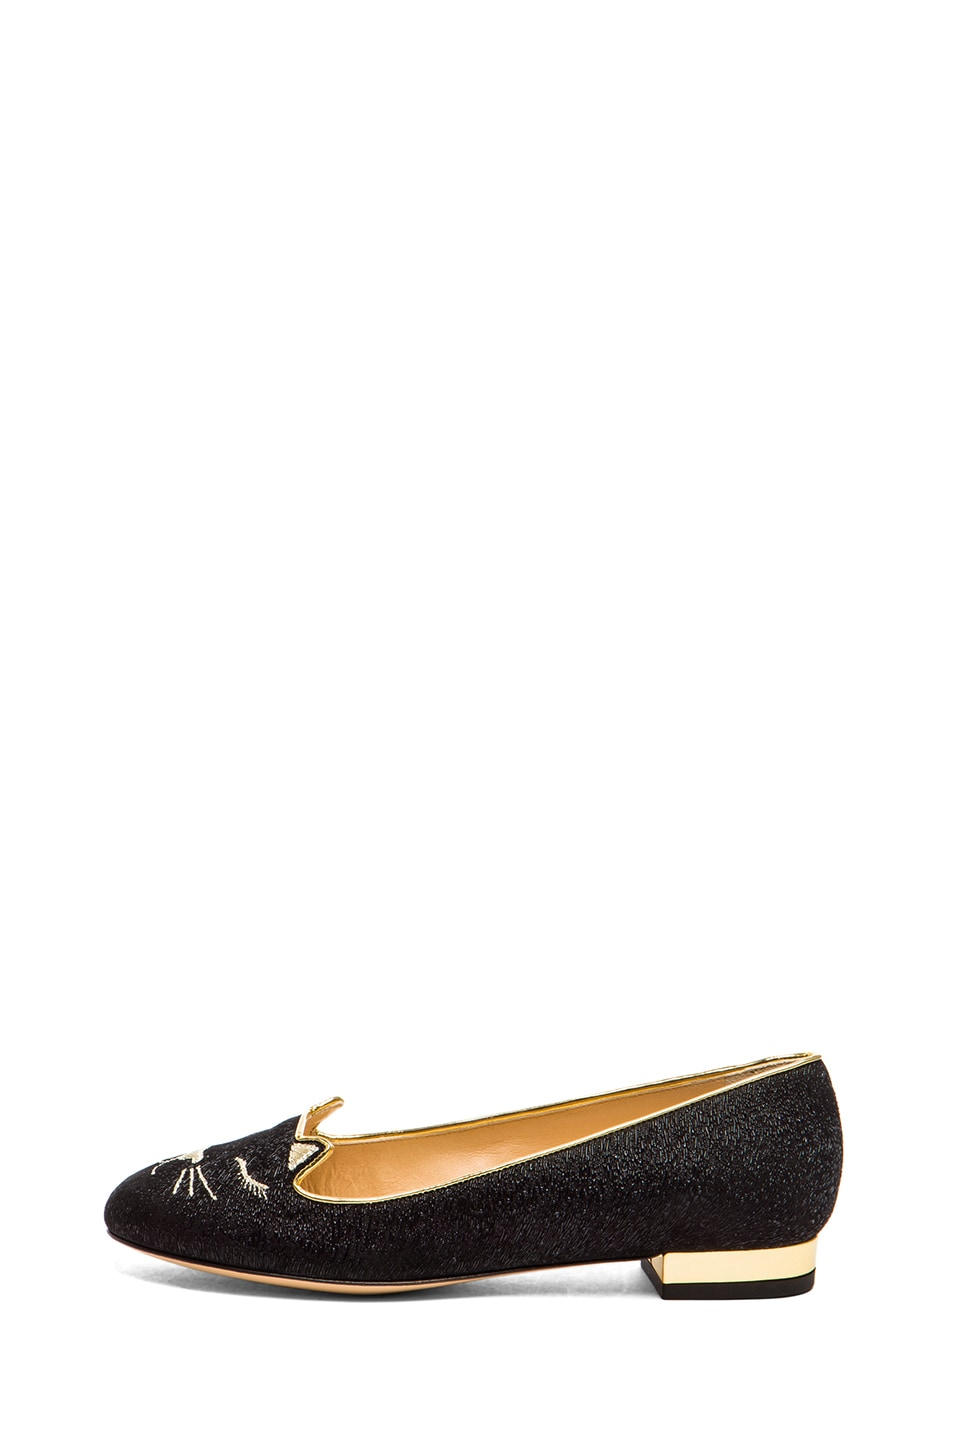 Image 1 of Charlotte Olympia Sleeping Kitty Textured Suede Flats in Black